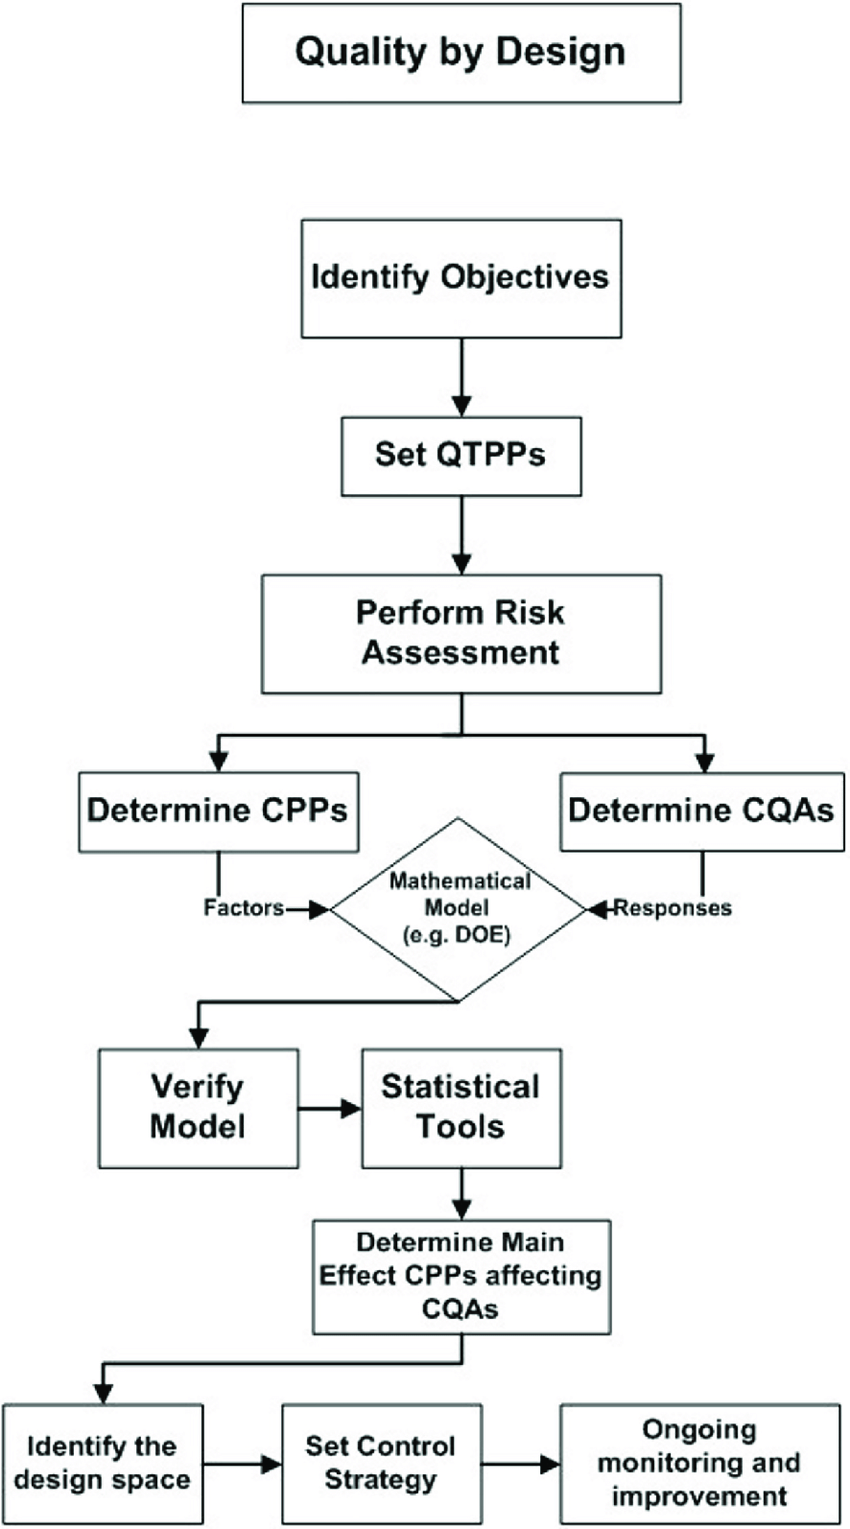 medium resolution of flow chart outlining the elements of qbd qtpp quality targeted product profile cpps